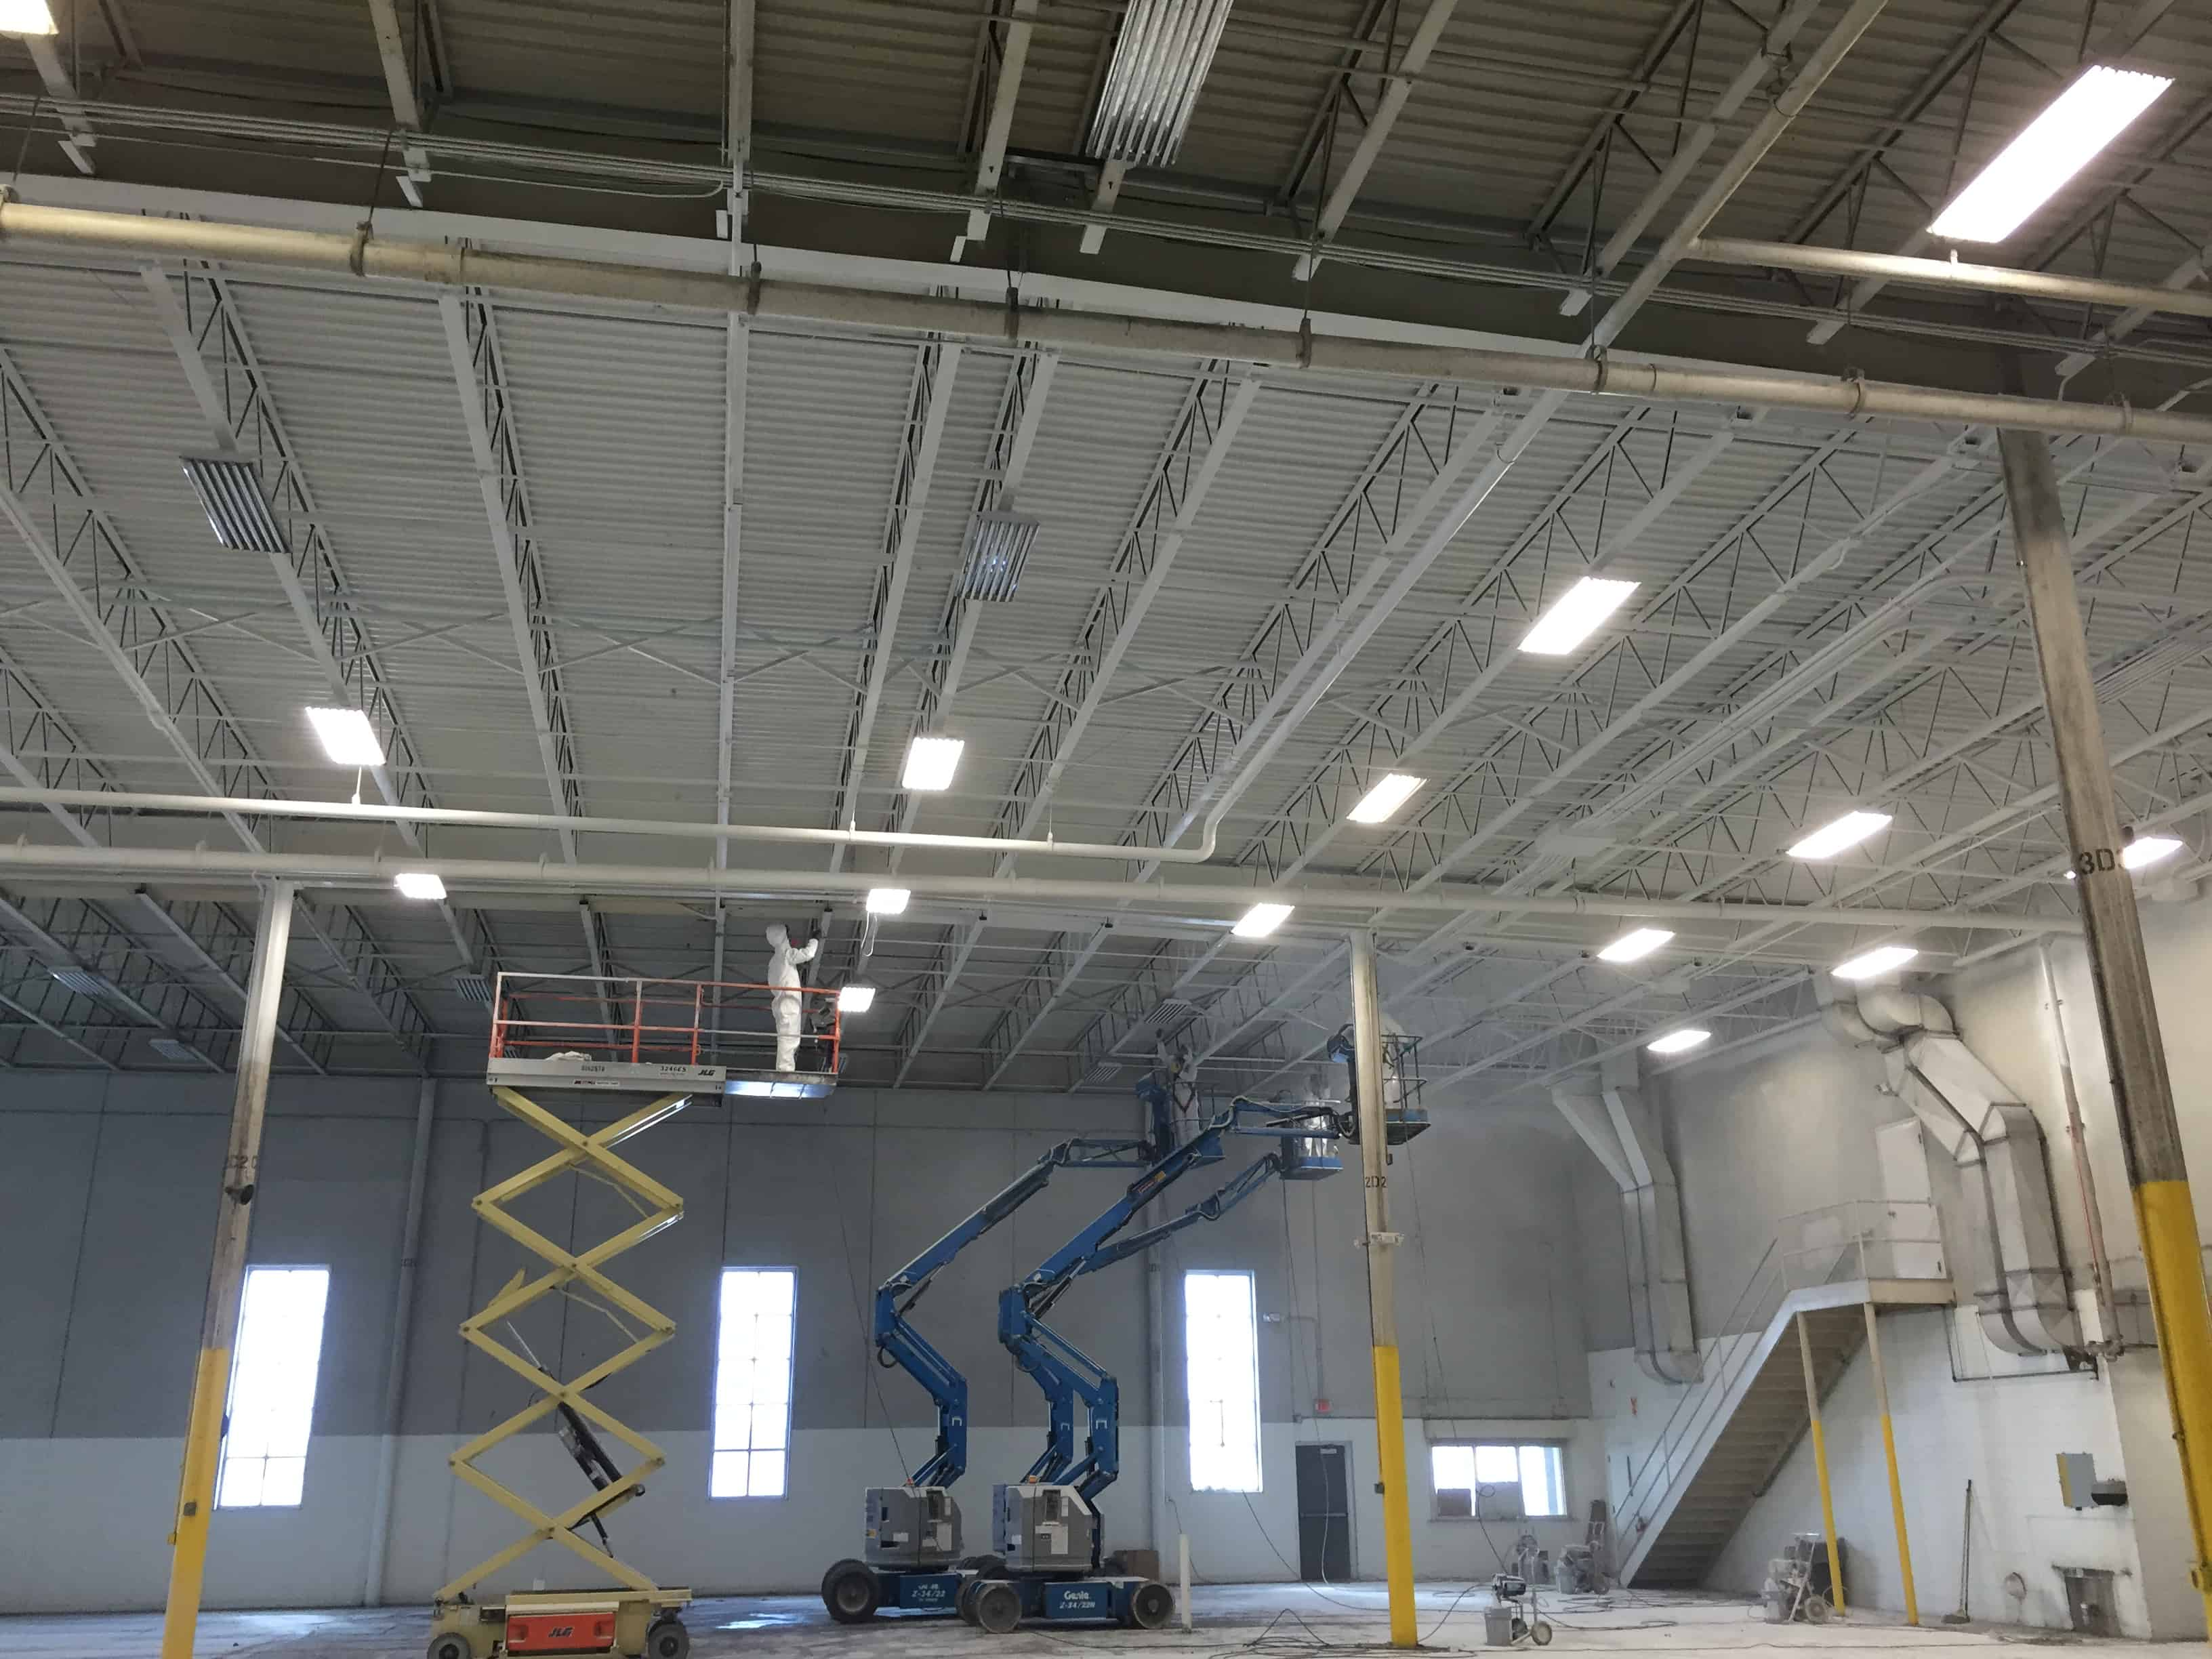 Industrial paint job recoveron services for Industrial painting service